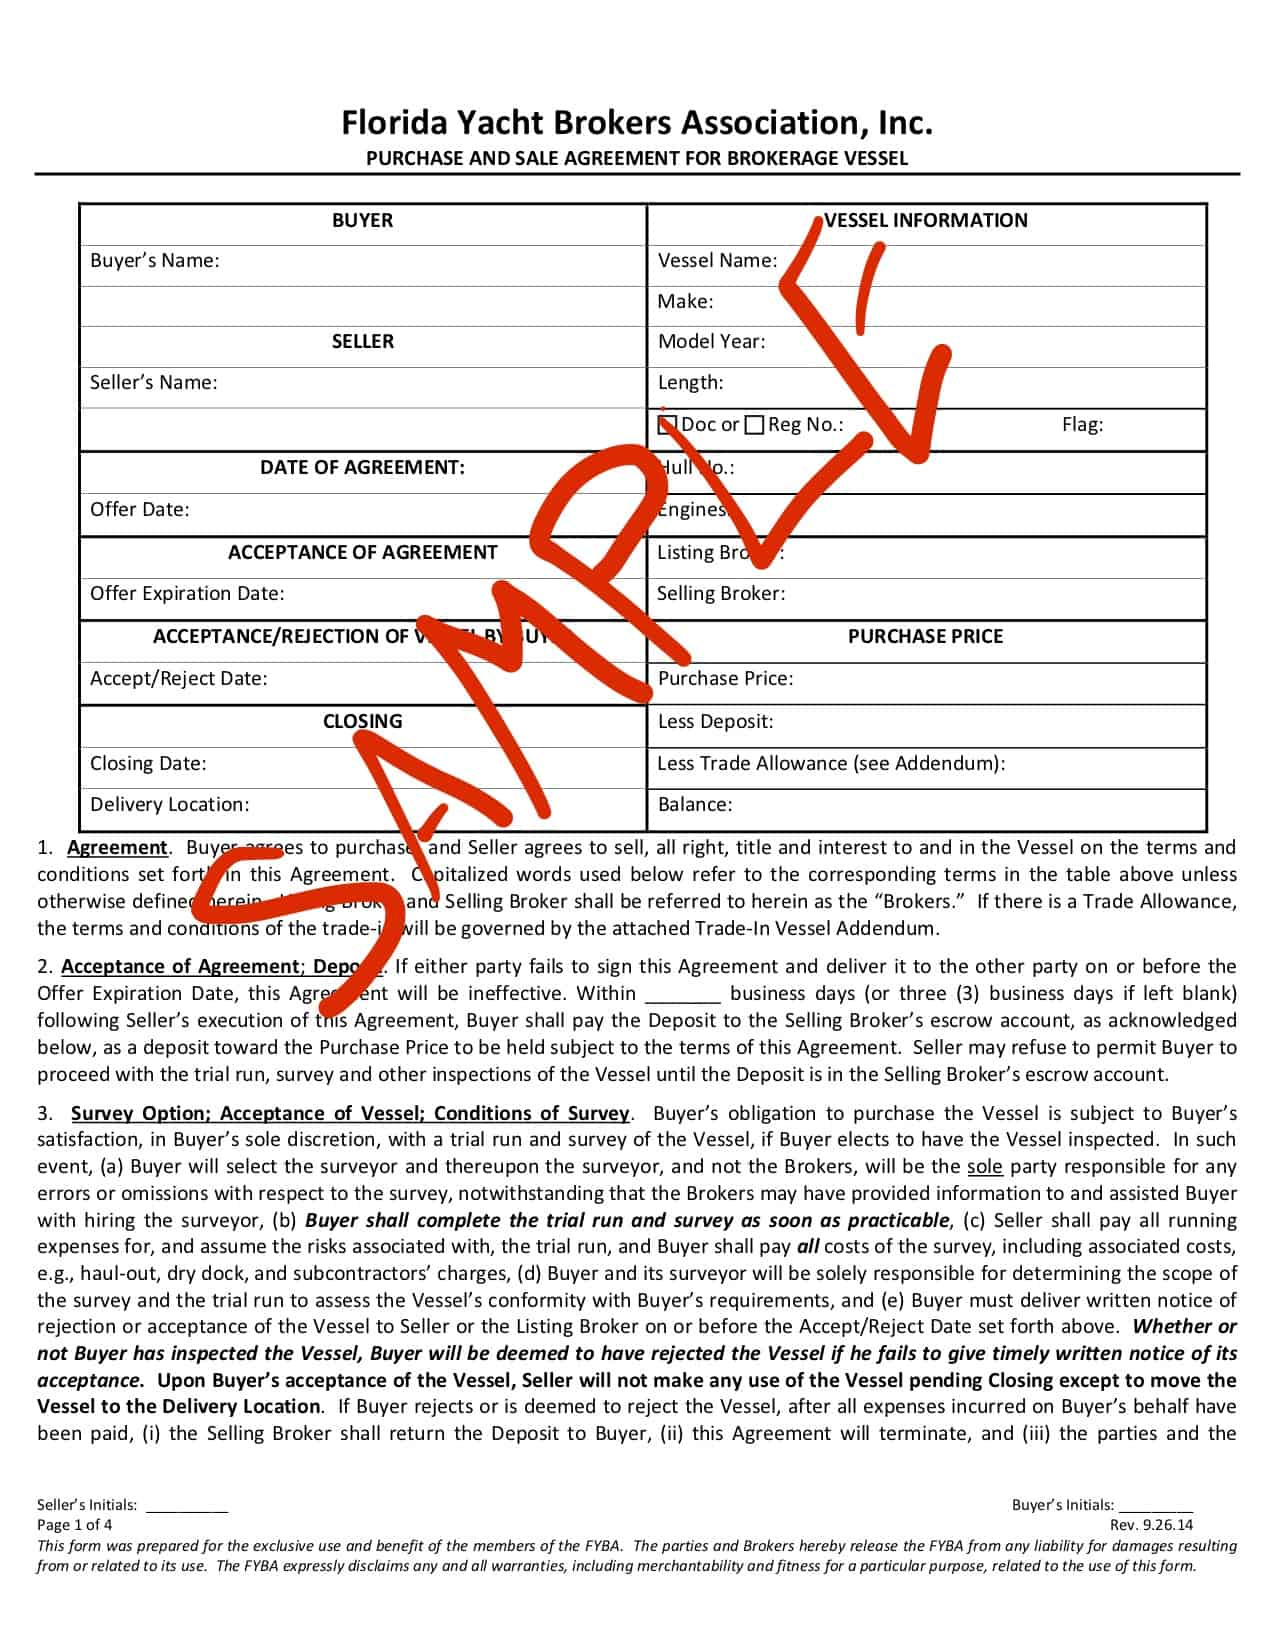 Yacht Purchase and sale documents